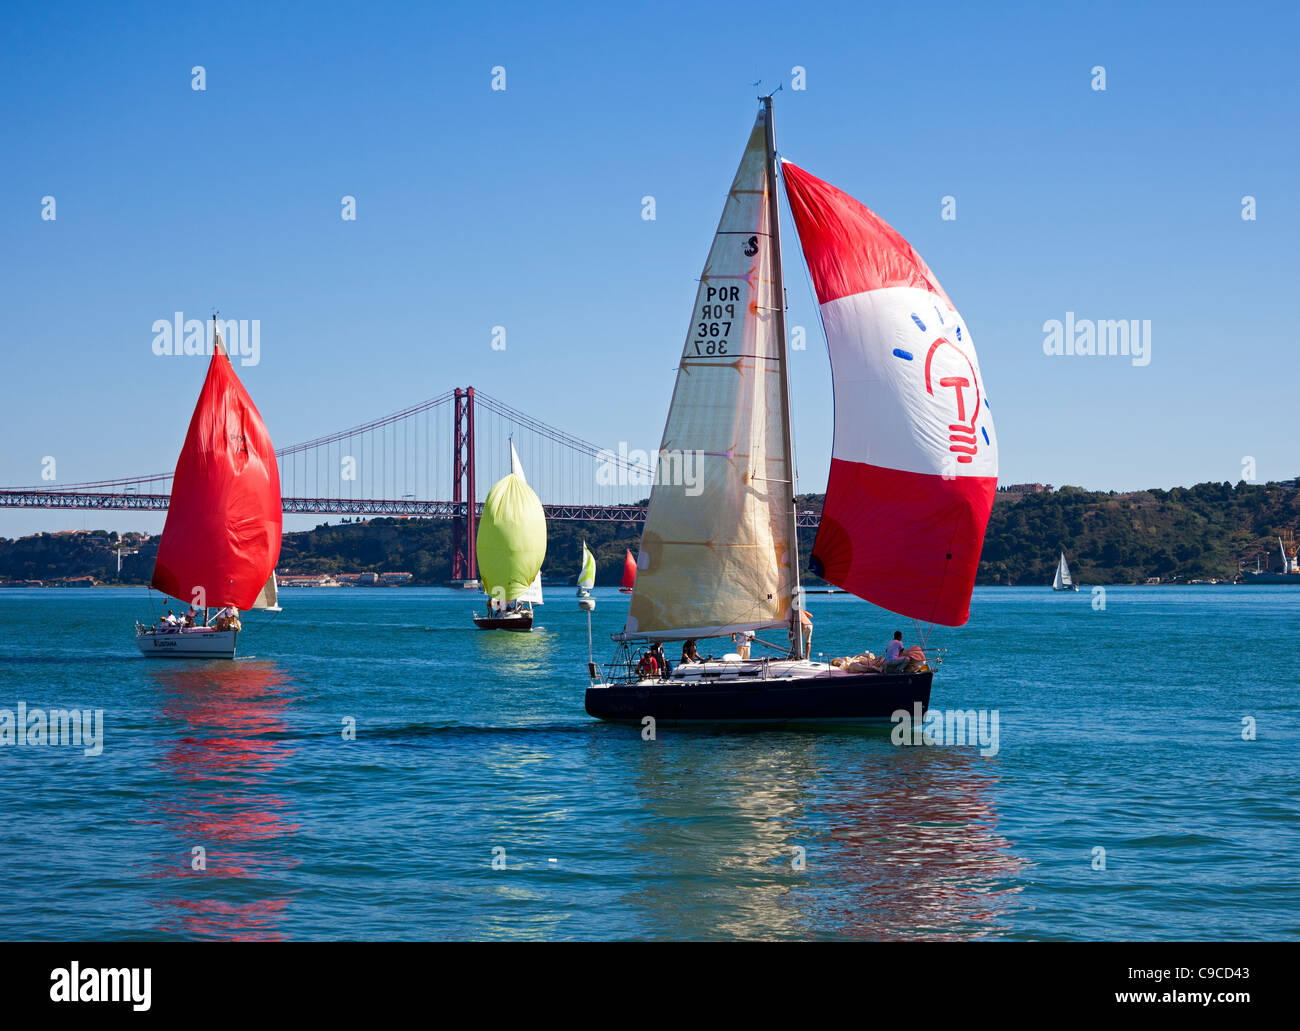 Sailing on the River Tagus with the Ponte 25 de Abril Bridge in background Stock Photo